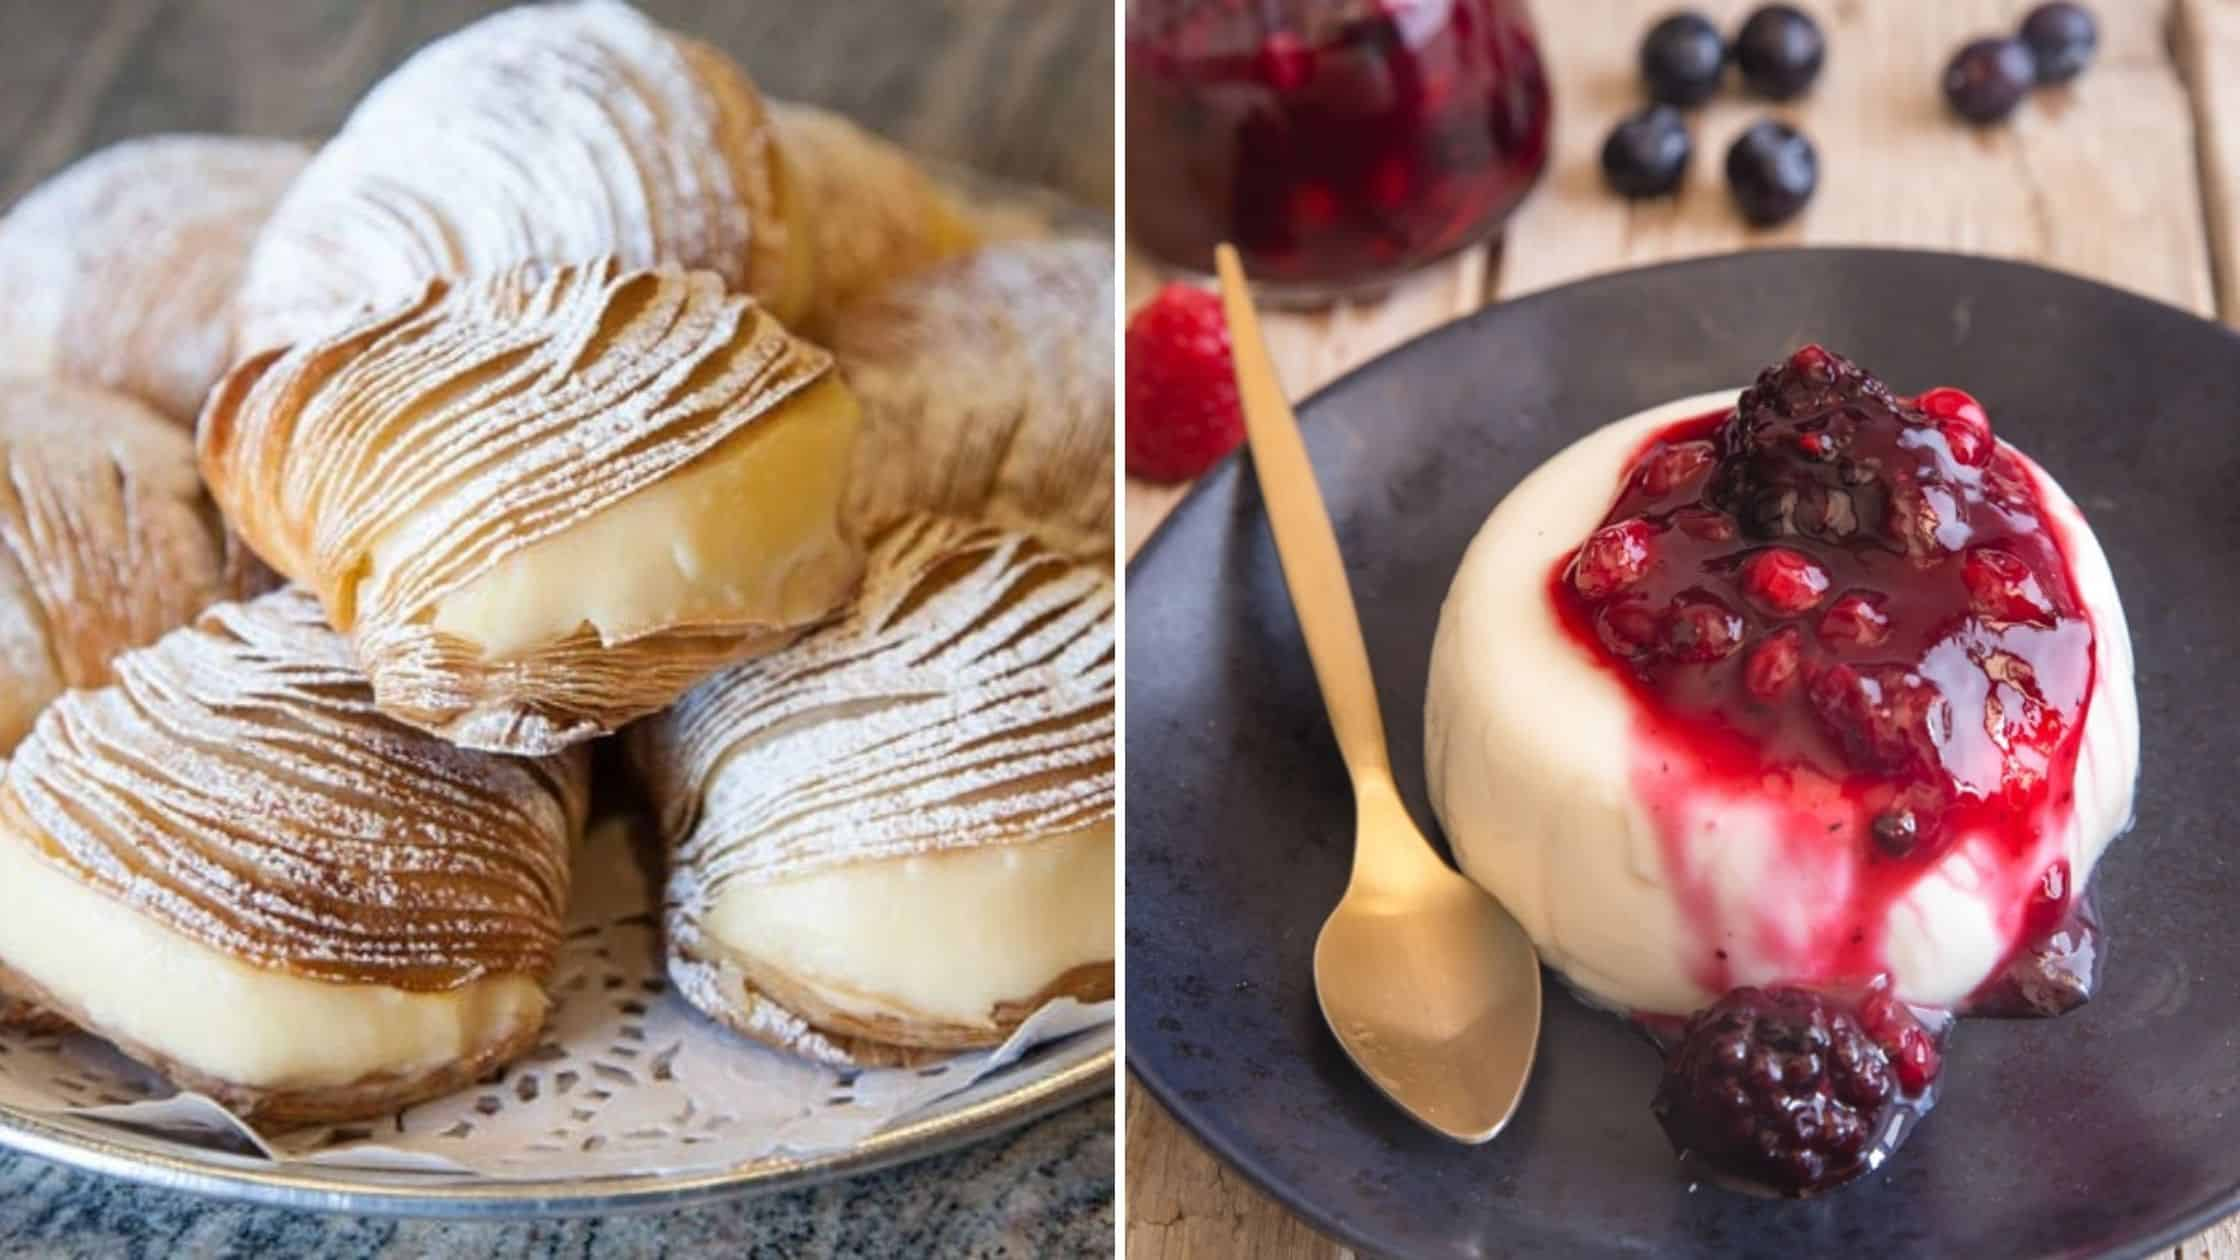 17 Of The Best Italian Dessert Recipes That You Need To Try At Home